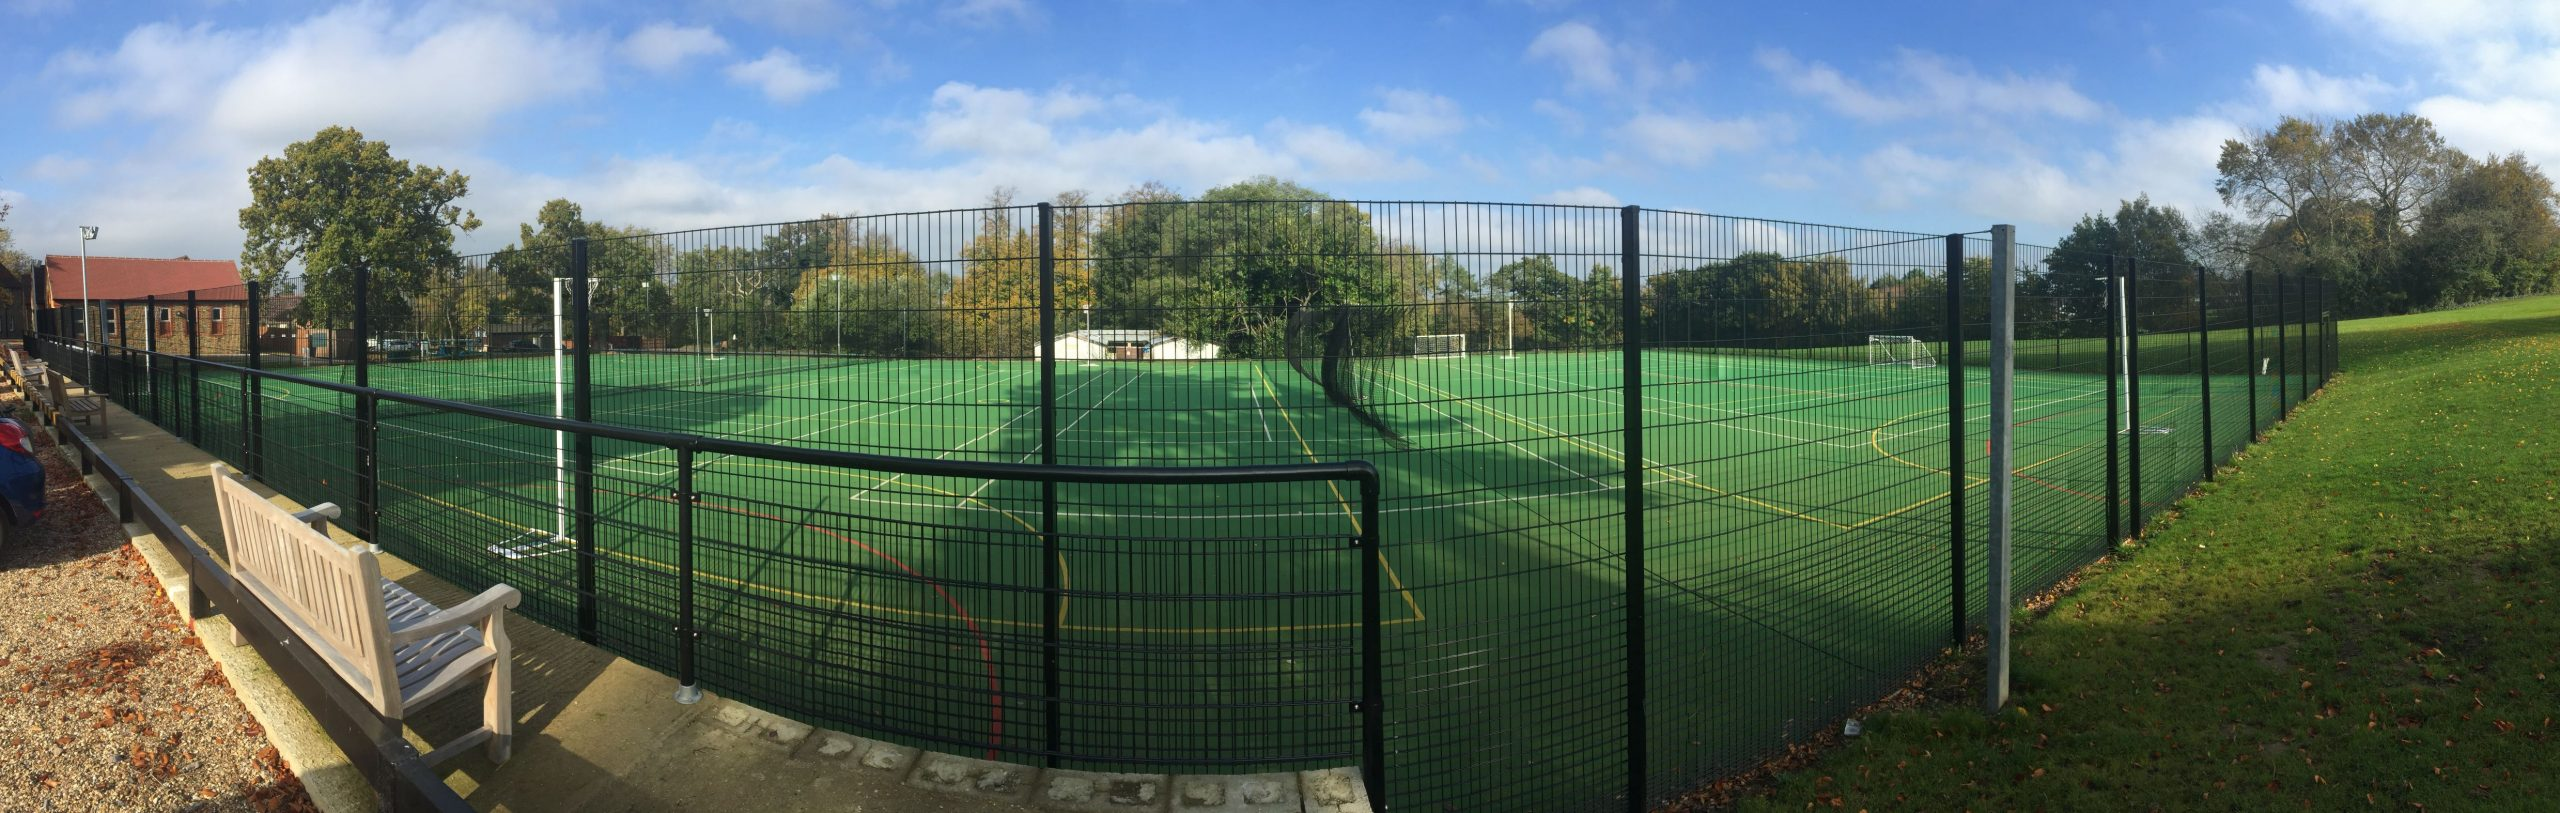 ETC Sports Surfaces provide MUGA surfaces plus equipment and fencing to finish your facility perfectly.